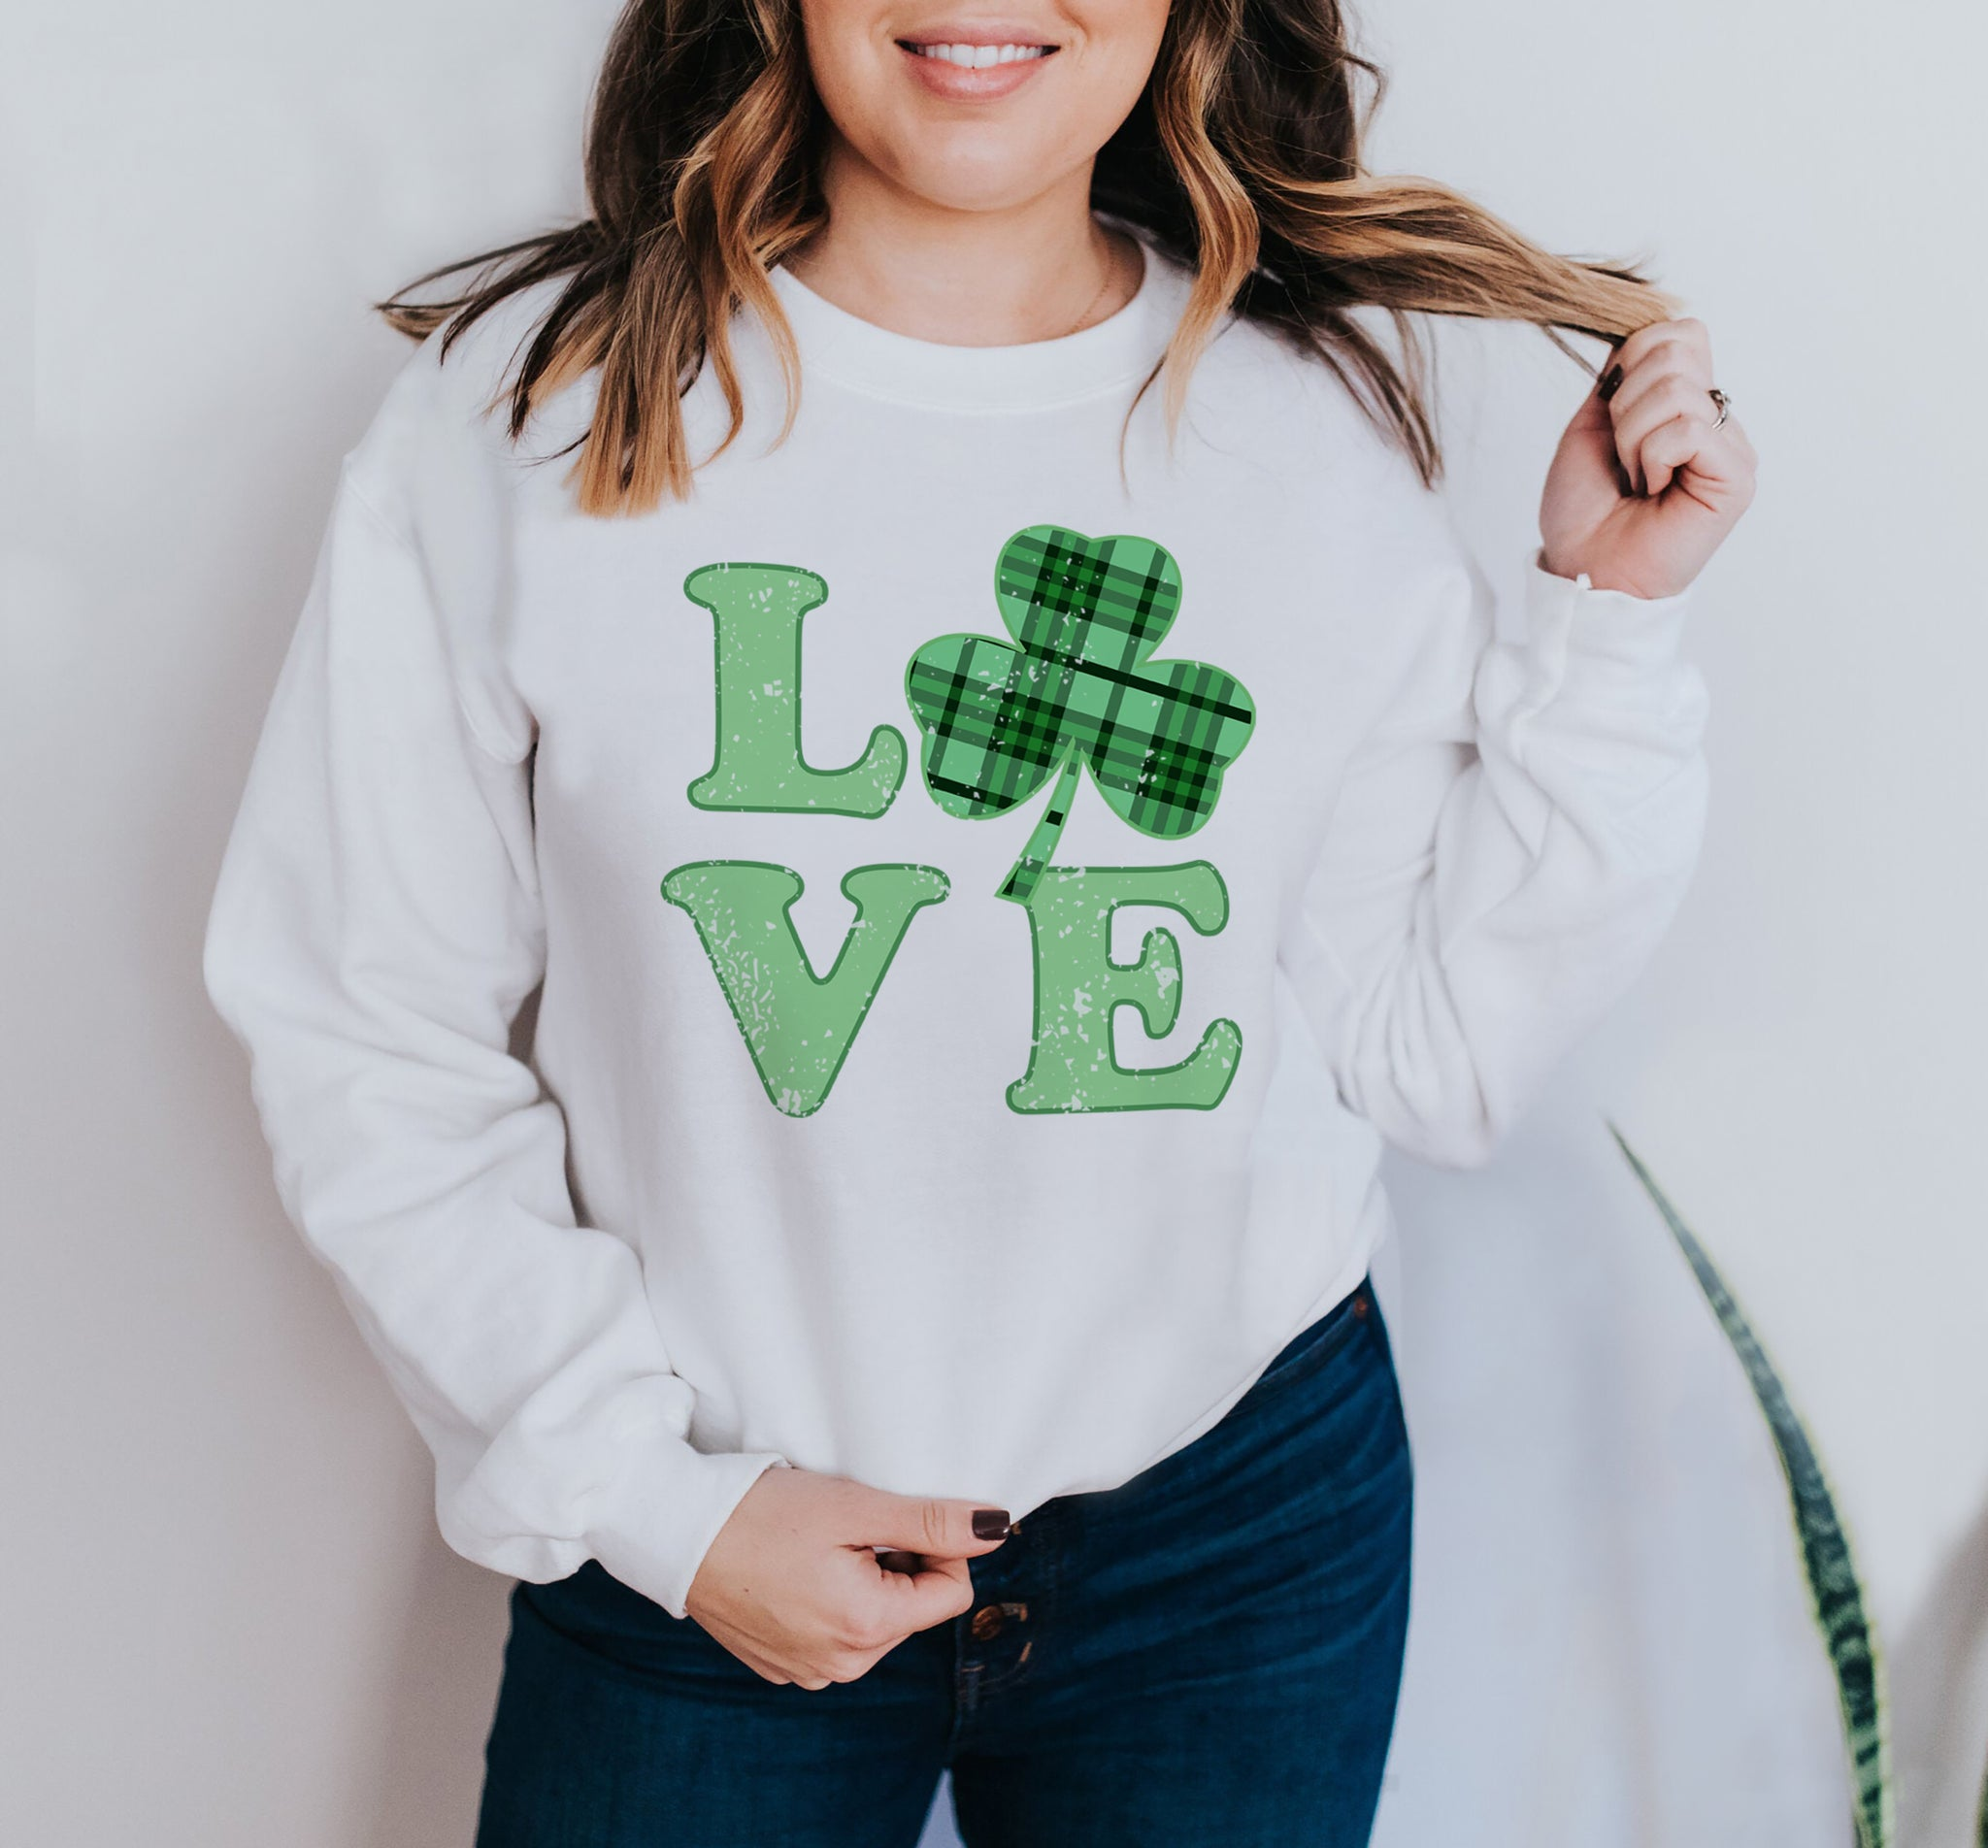 White sweatshirt with a green shamrock plaid that says love - HighCiti